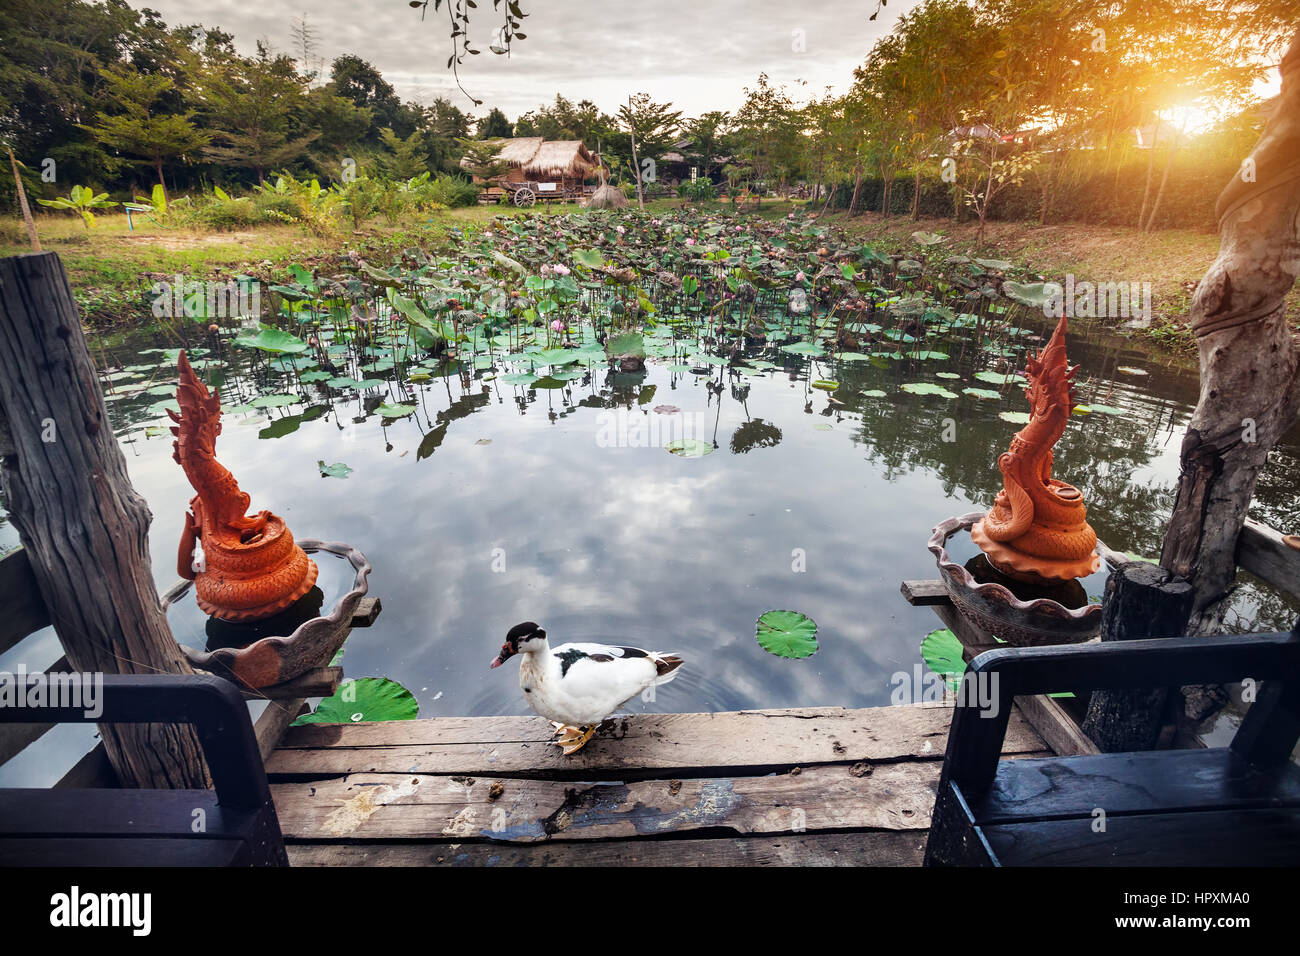 Beautiful White Duck at summerhouse near pond with lotus and Dragon statues in Sukhothai resort, Thailand - Stock Image